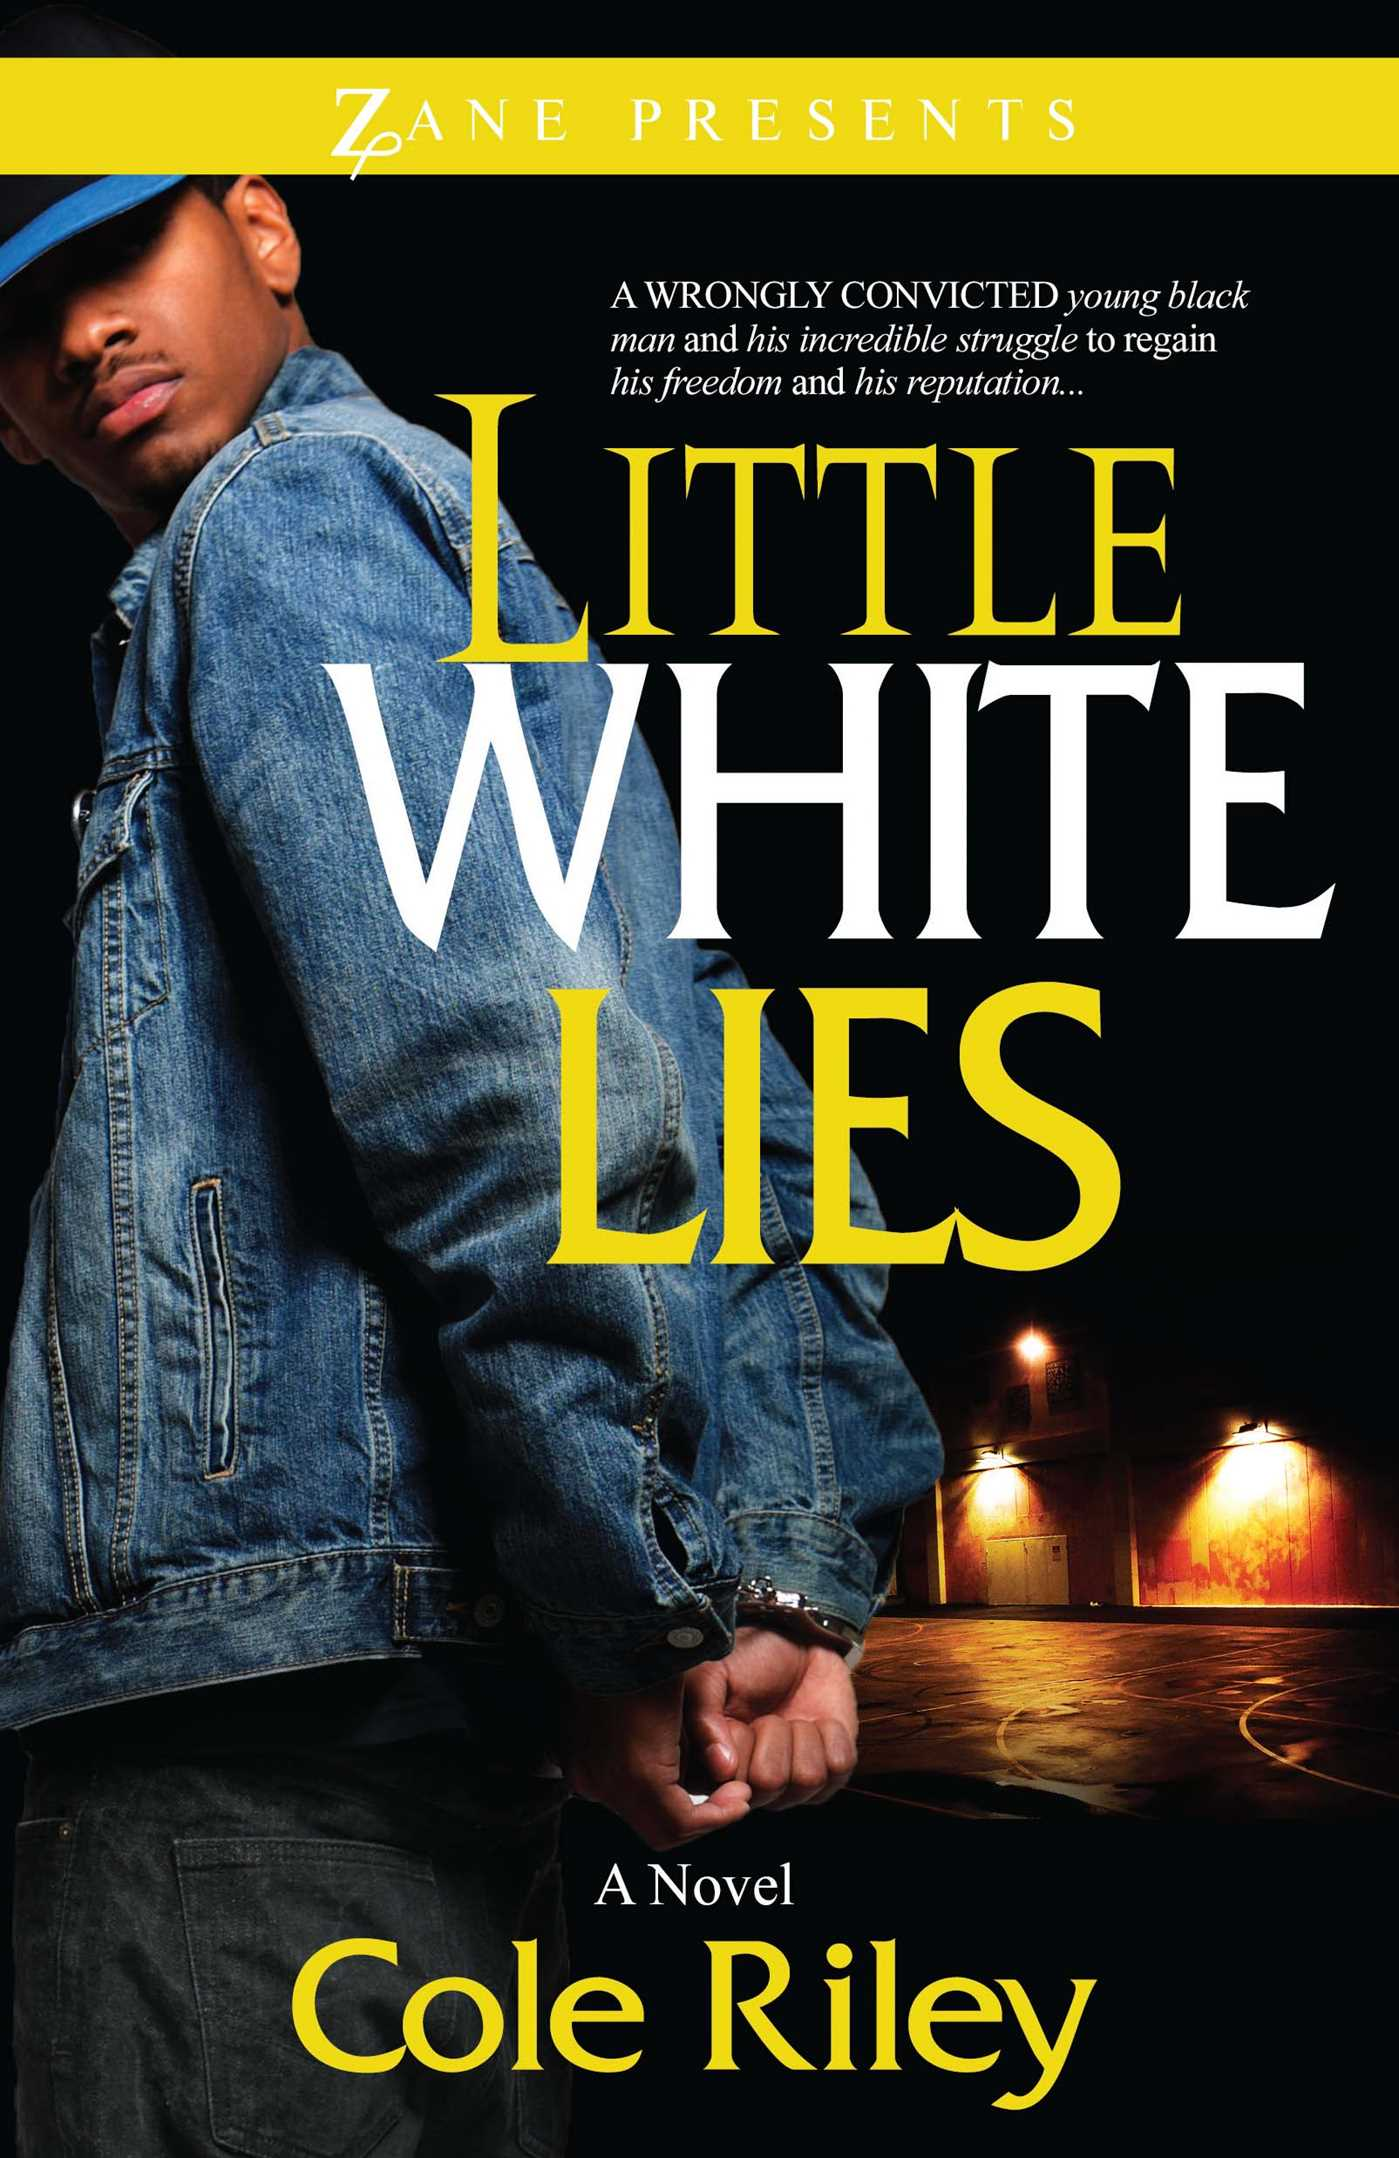 Little-white-lies-9781593095185_hr